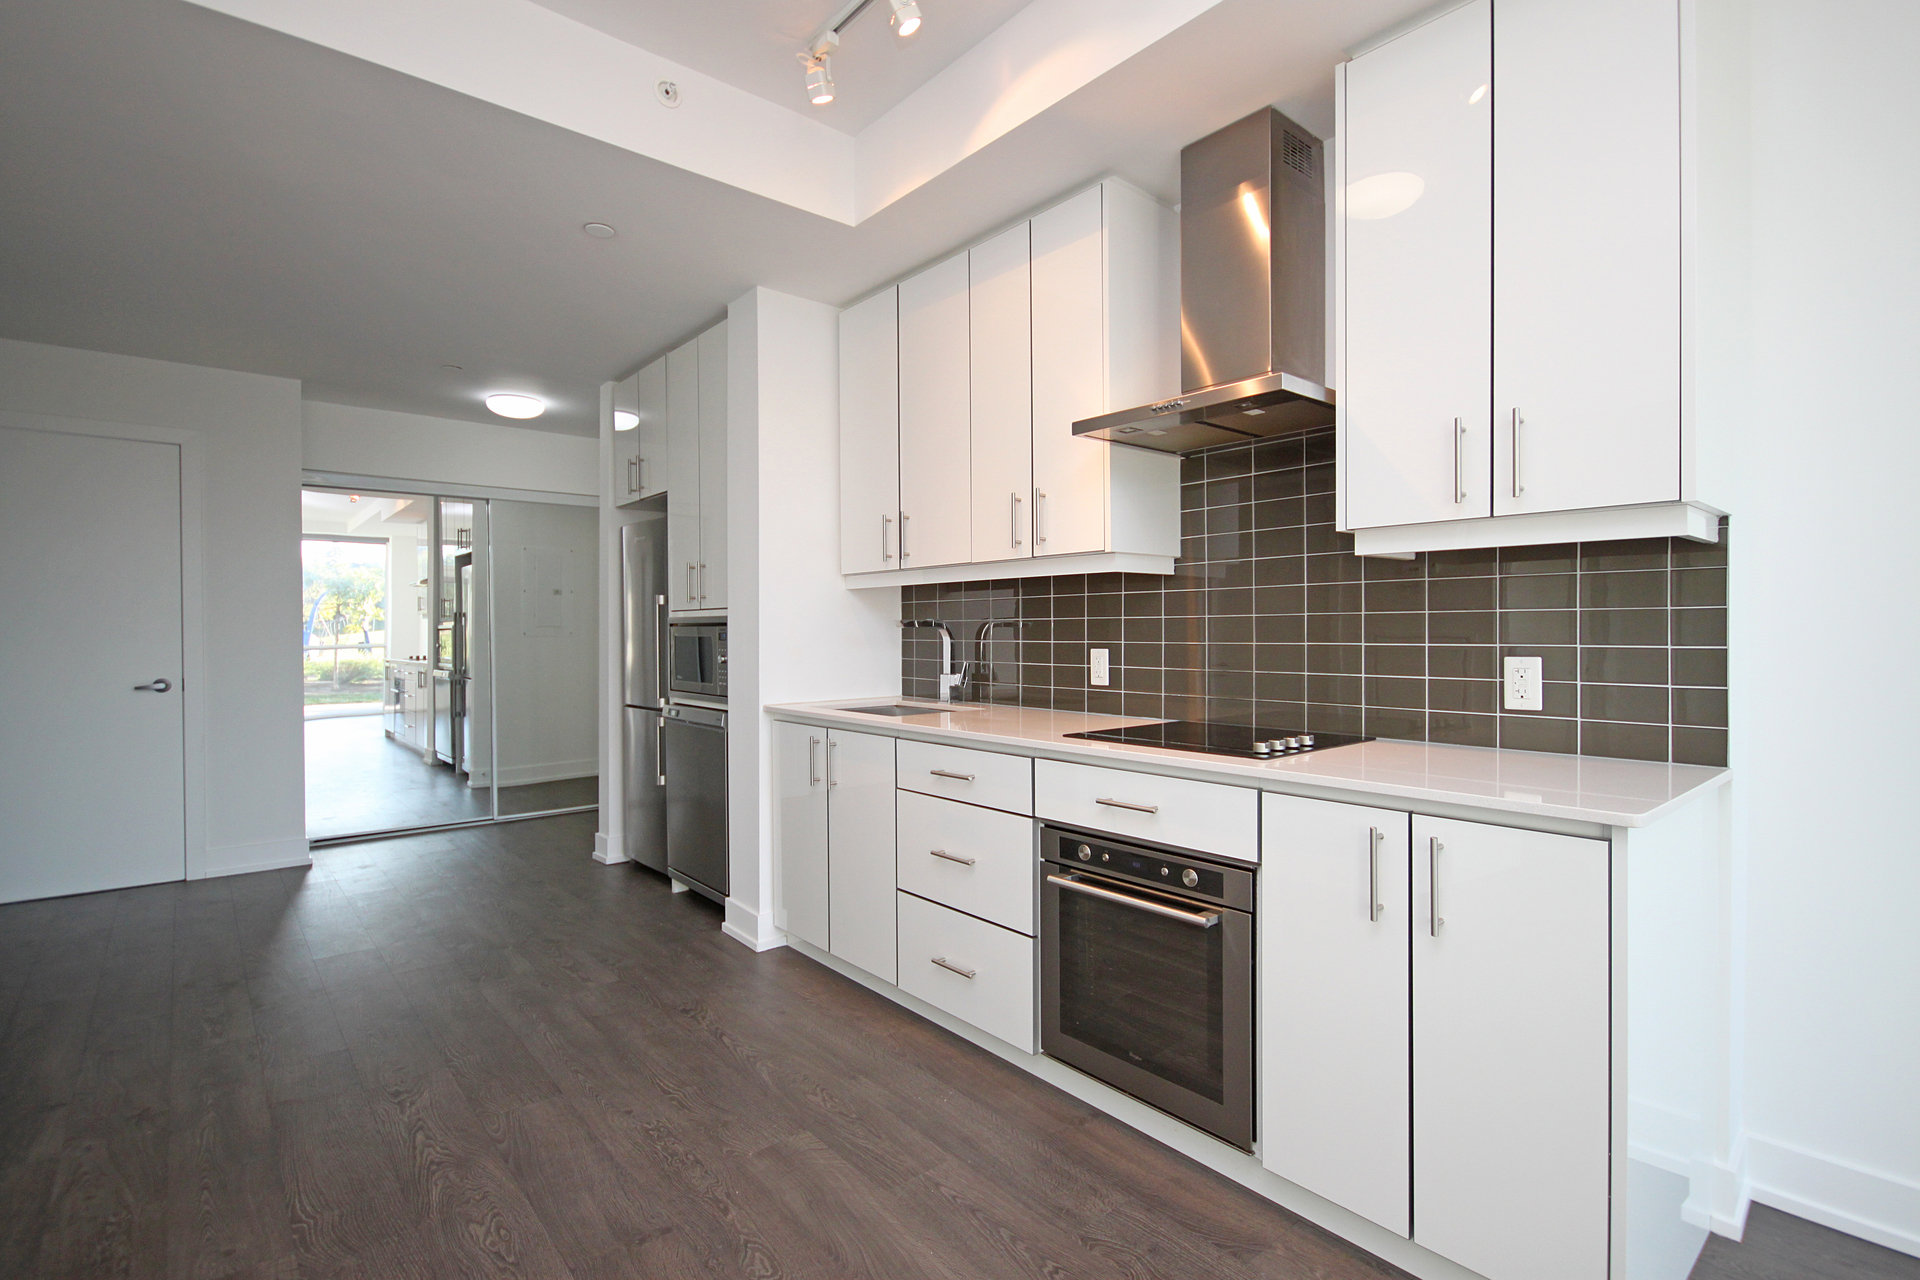 Kitchen at 105 - 75 The Donway Donway W, Banbury-Don Mills, Toronto